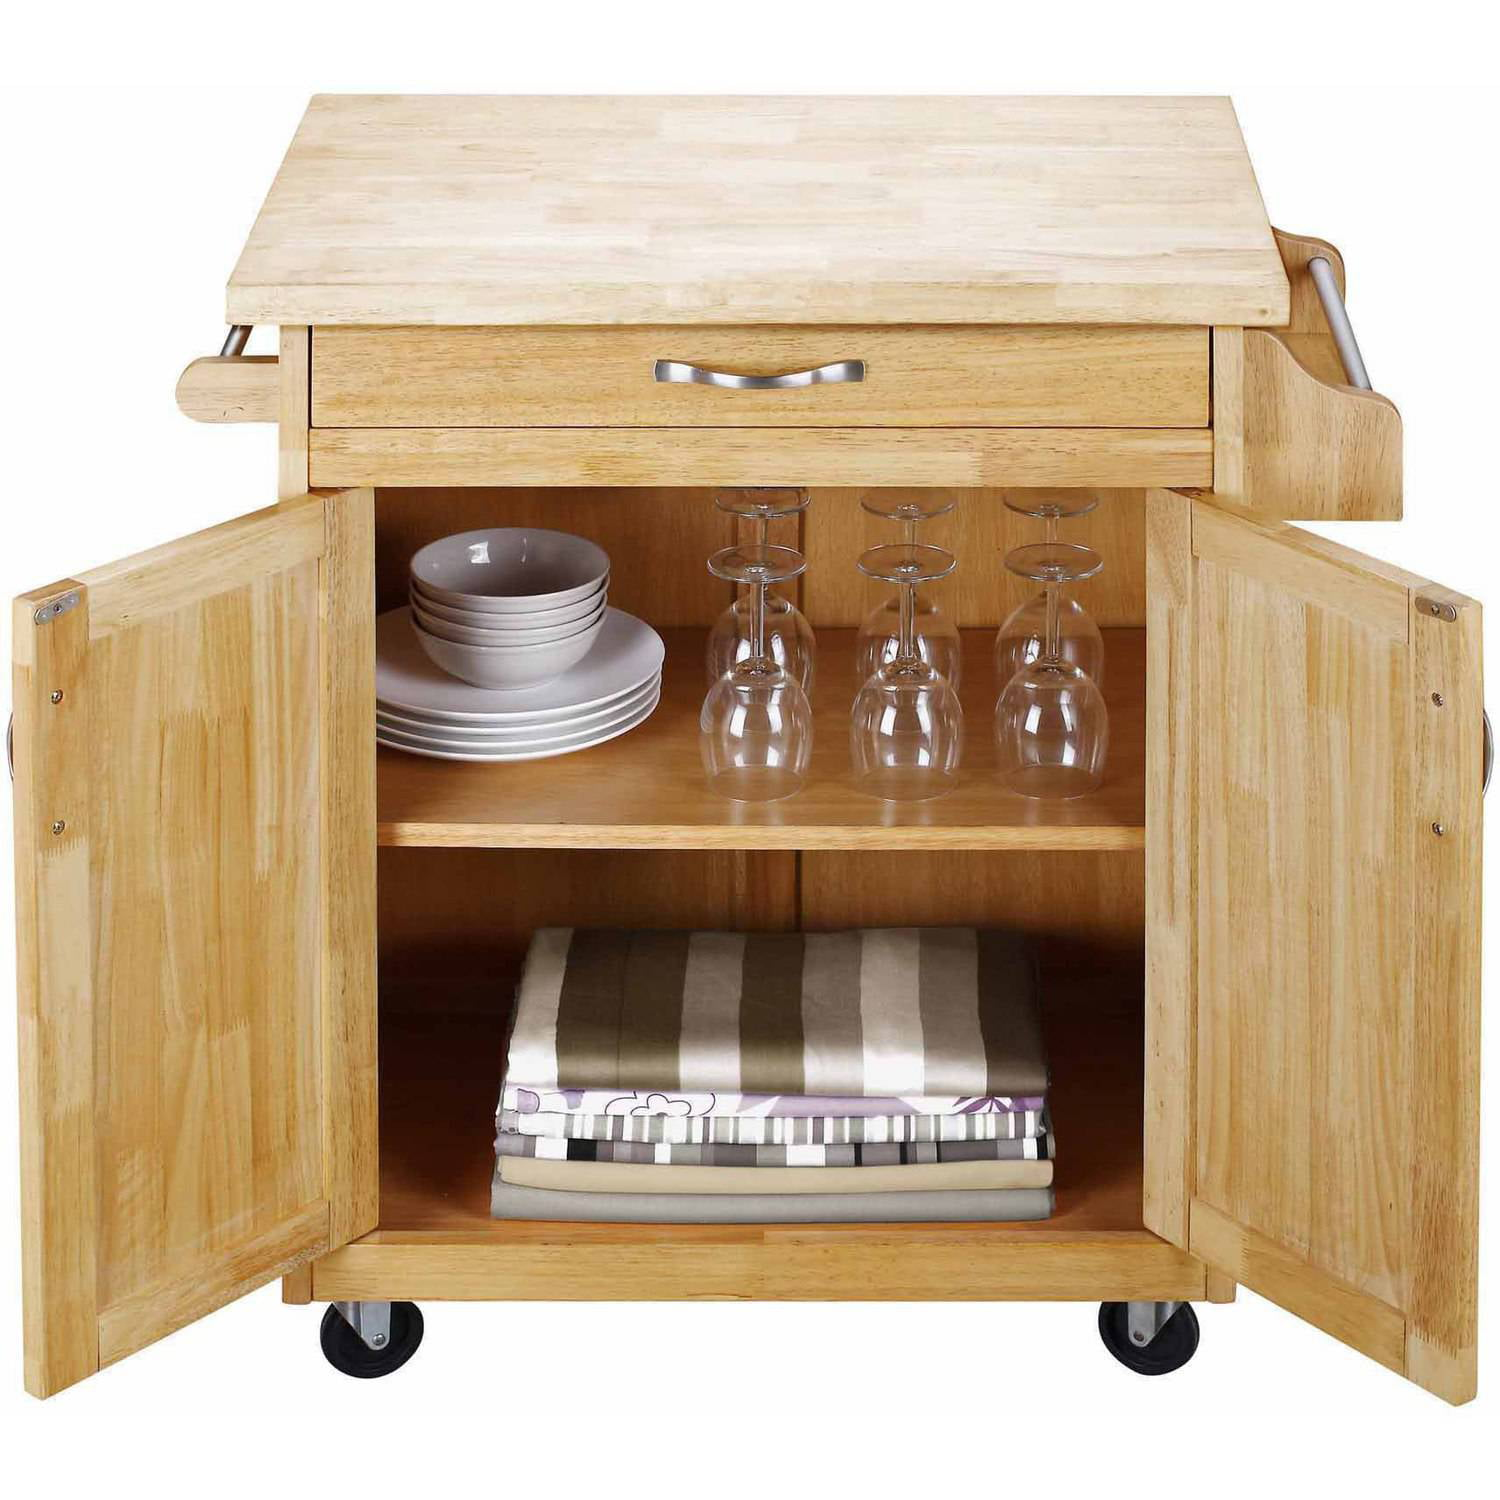 Mainstays Kitchen Island Cart With Drawer And Storage Shelves White Walmart Com Walmart Com